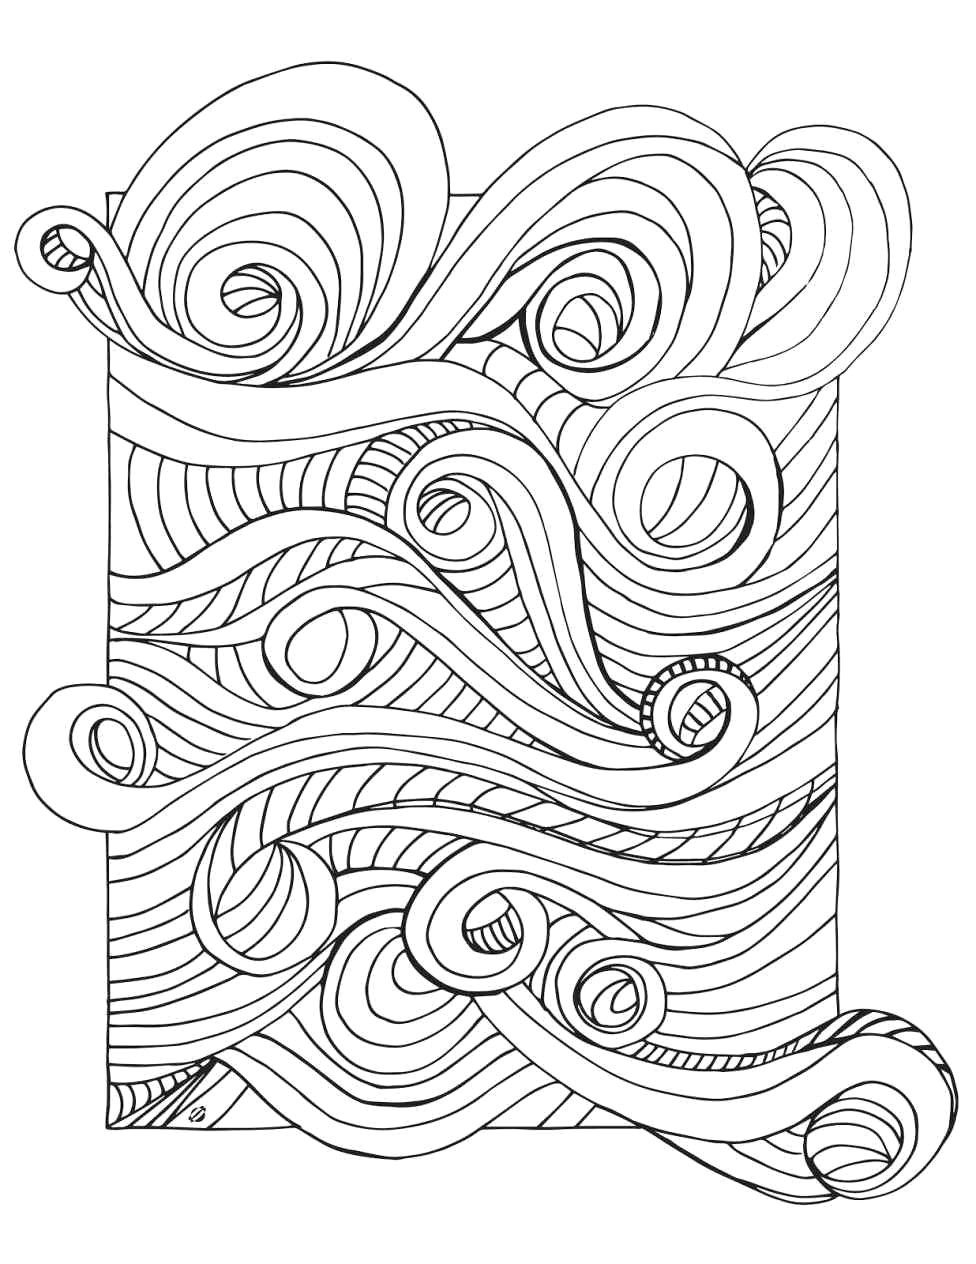 Waves Coloring Page Art Therapy Coloring Book Coloring Pages